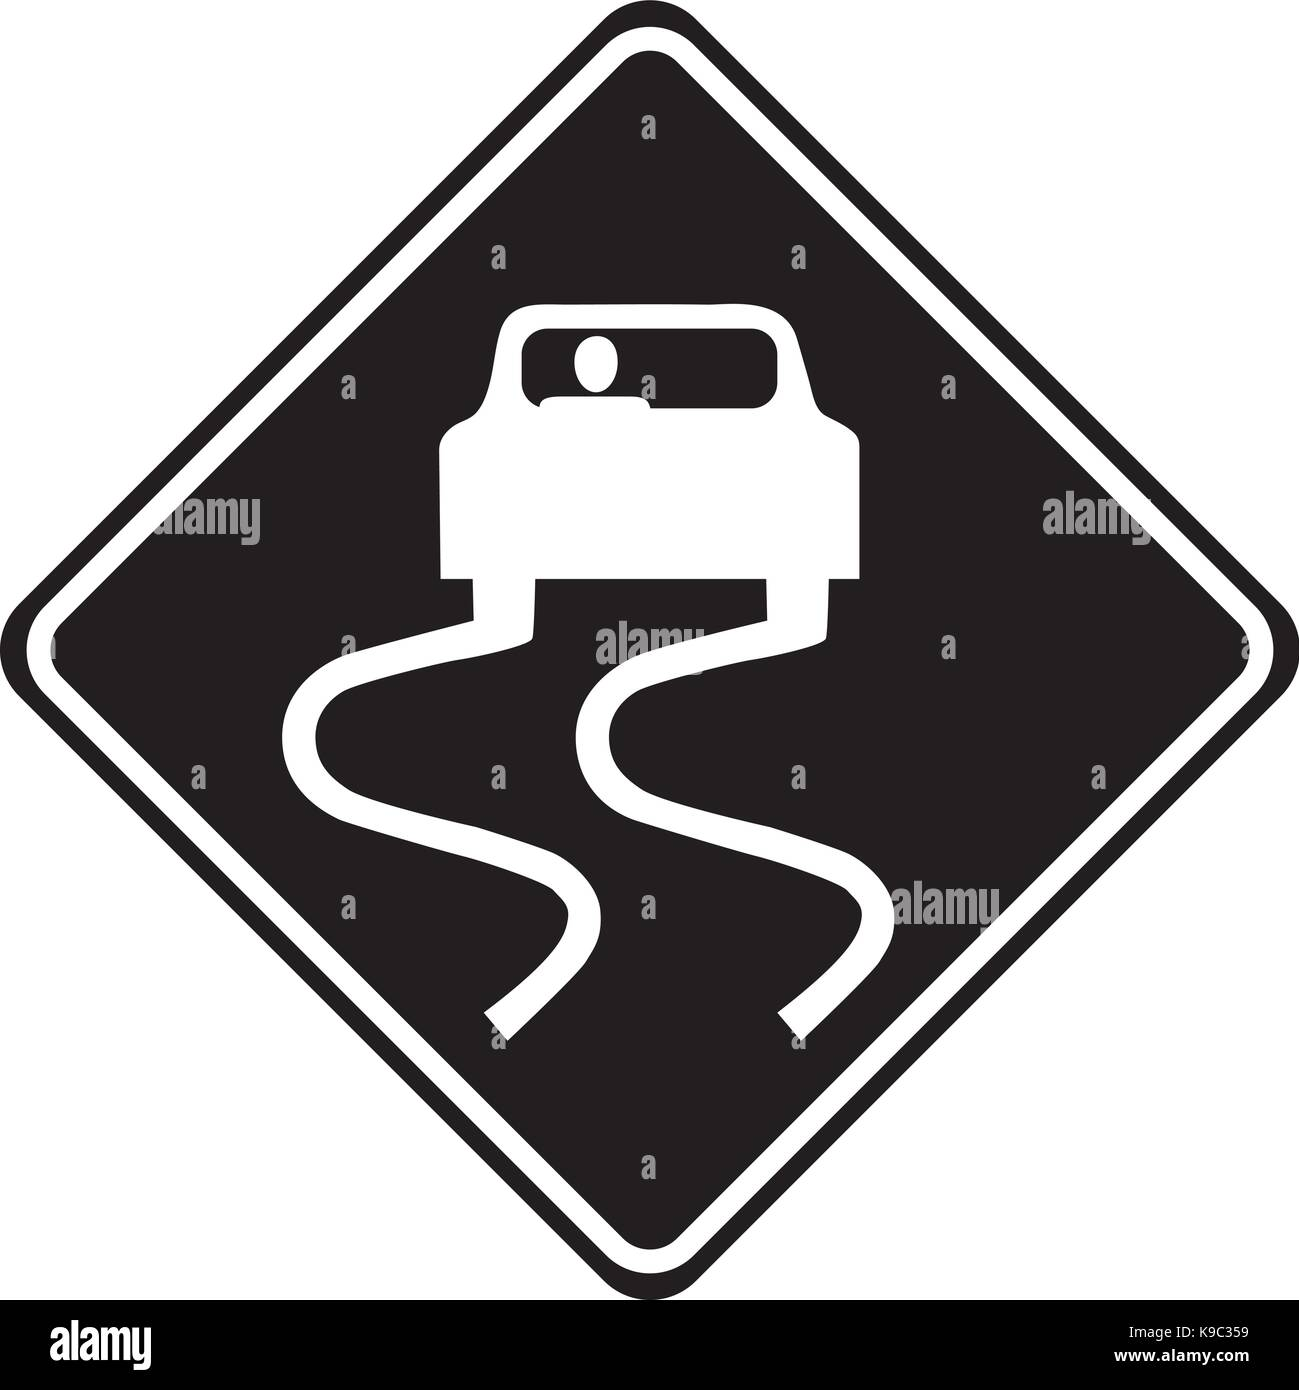 Slippery road ahead warning sign - Stock Vector